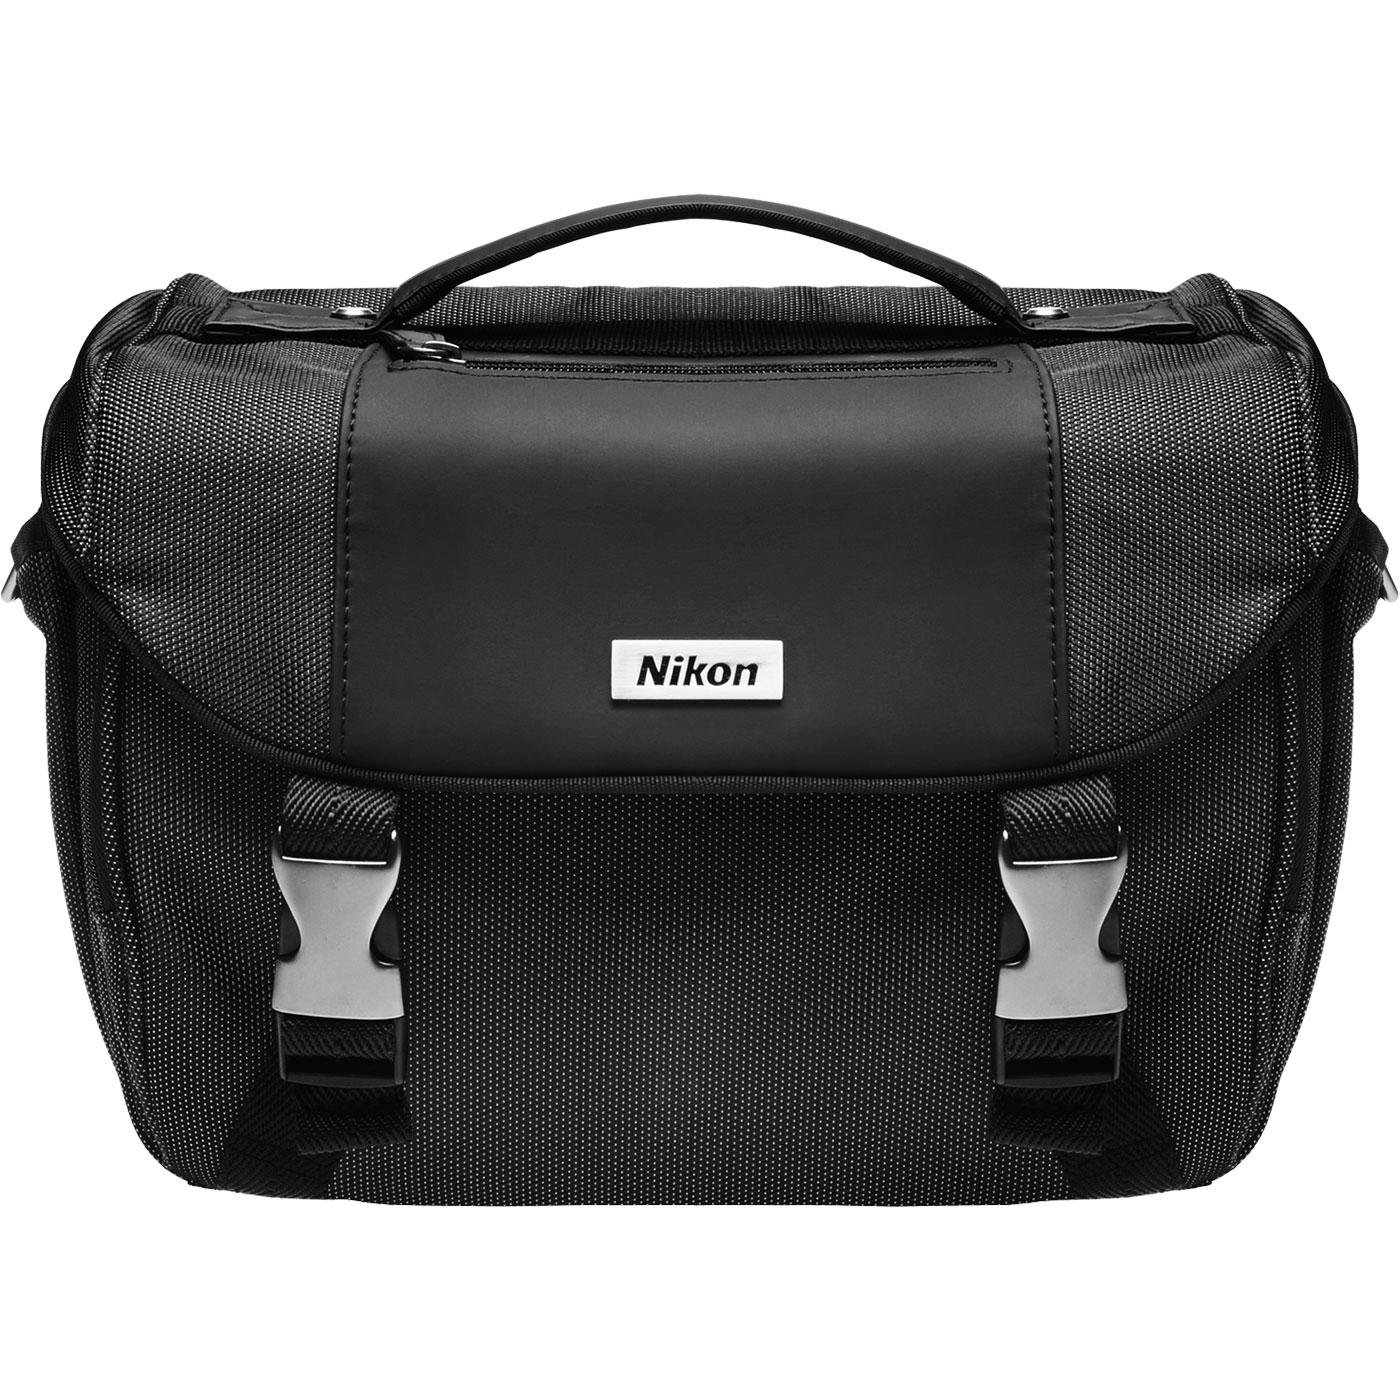 Nikon Deluxe Digital SLR Camera Case - Gadget Bag for Df, D810, D750, D610, D7100, D7200, D5500, D5300, D5200, D3300, D3200